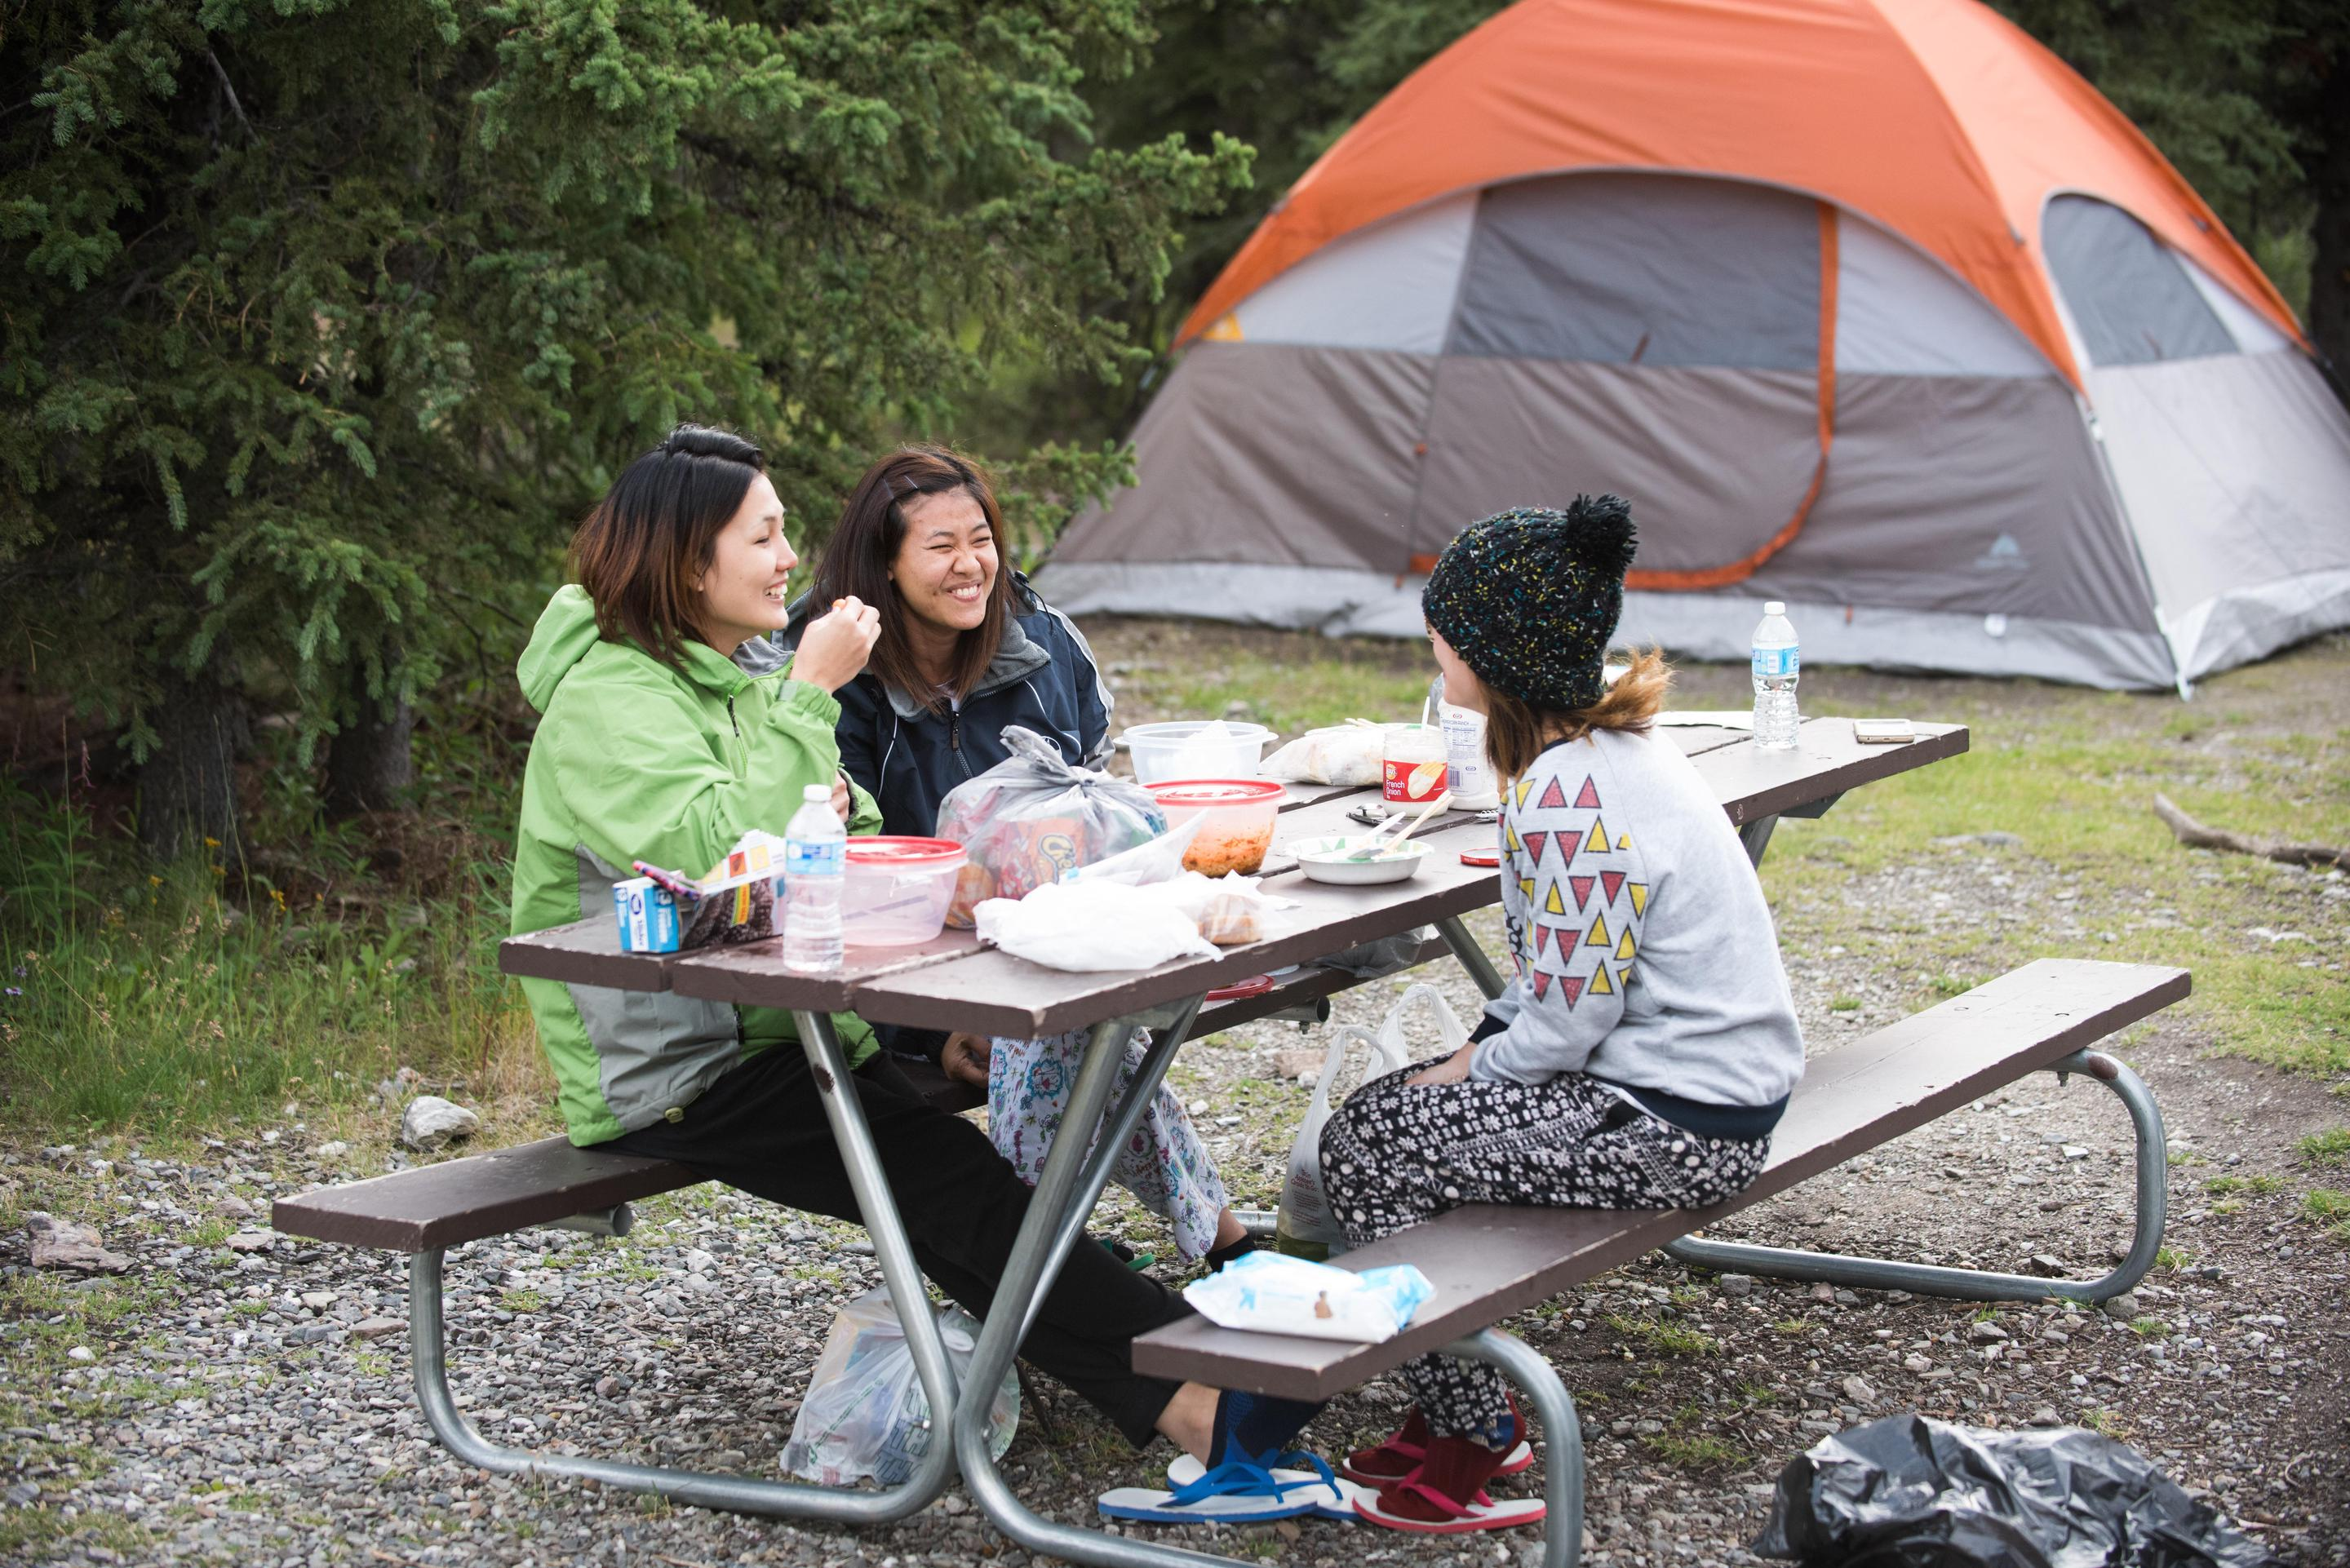 Riley Creek CampgroundRiley Creek is open to RVs and tent campers